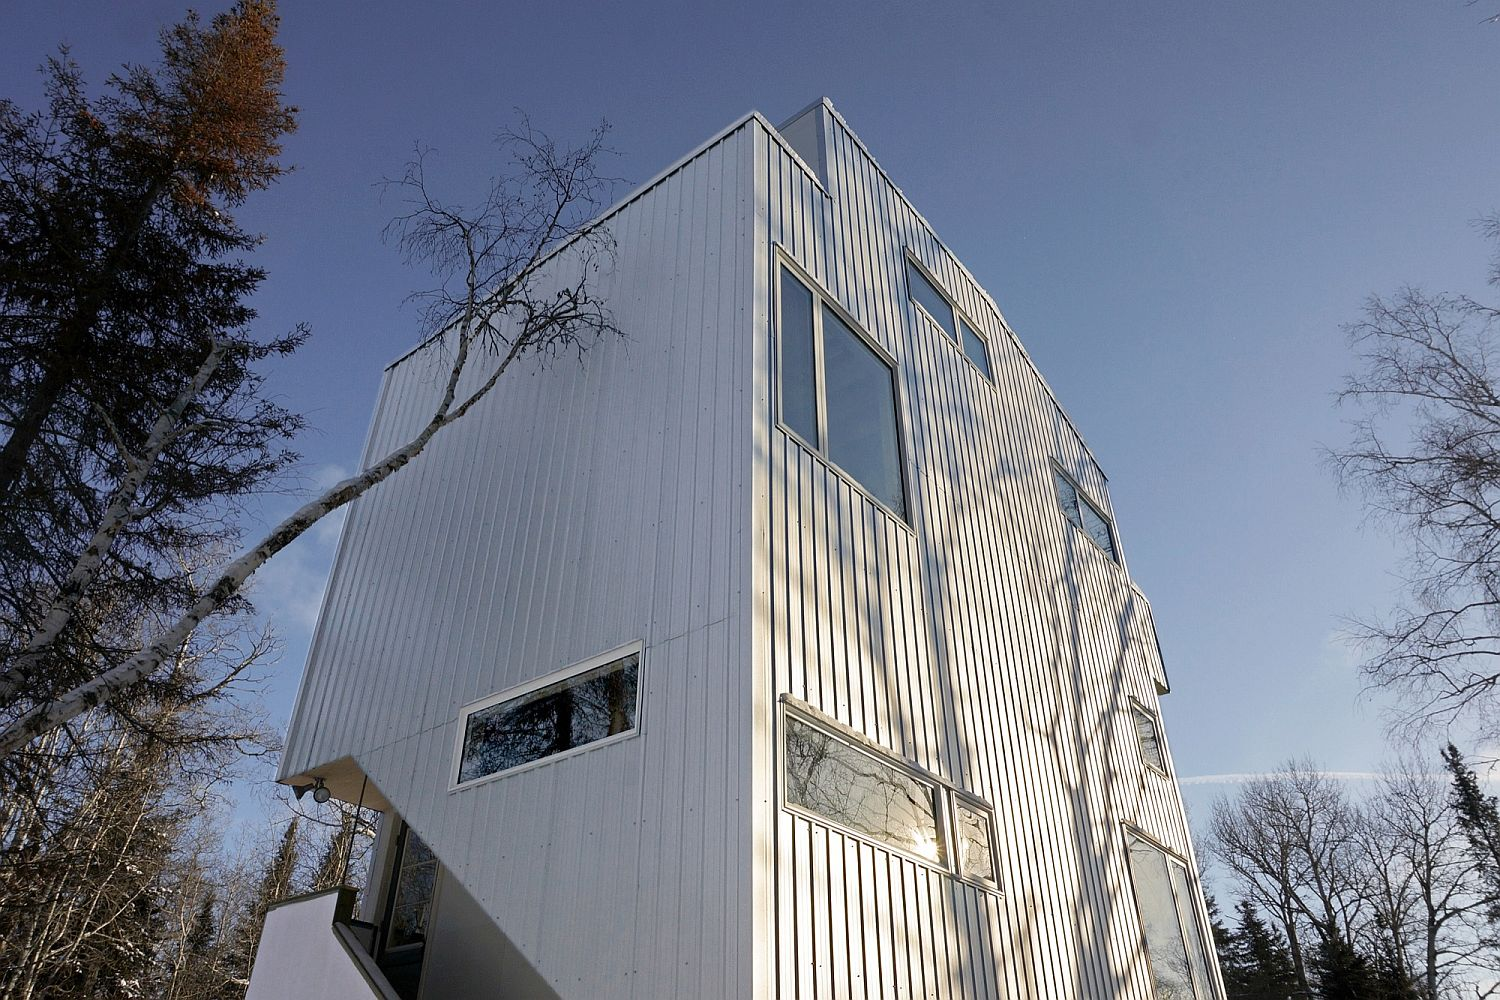 Stylish and modern Pole House sits on recycled gas pipes